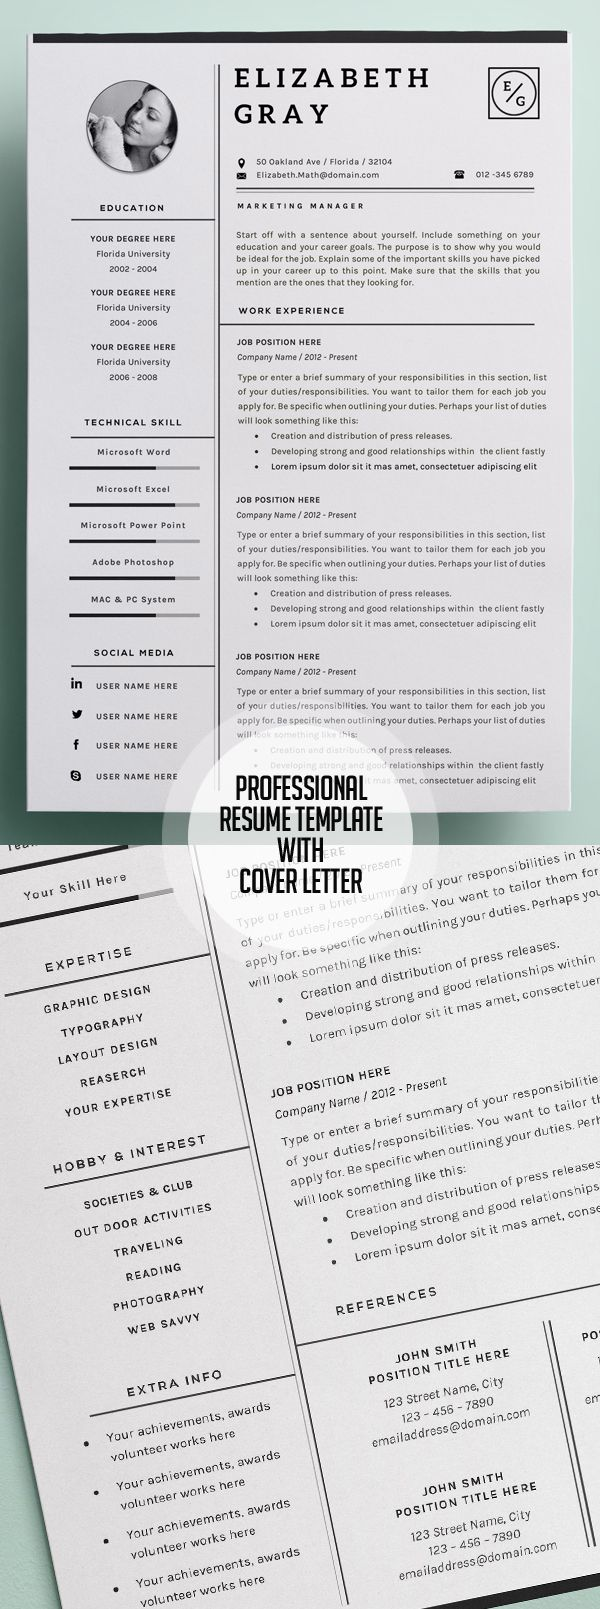 Opposenewapstandardsus  Nice  Resume Ideas On Pinterest  Resume Resume Templates And  With Great Professional And Modern Resume Template With Page Cover Cvtemplate With Beautiful Public Relations Resume Objective Also Sales Associate Resume Samples In Addition Teaching Experience Resume And Freelancer Resume As Well As Maintenance Tech Resume Additionally Samples Of Functional Resumes From Pinterestcom With Opposenewapstandardsus  Great  Resume Ideas On Pinterest  Resume Resume Templates And  With Beautiful Professional And Modern Resume Template With Page Cover Cvtemplate And Nice Public Relations Resume Objective Also Sales Associate Resume Samples In Addition Teaching Experience Resume From Pinterestcom